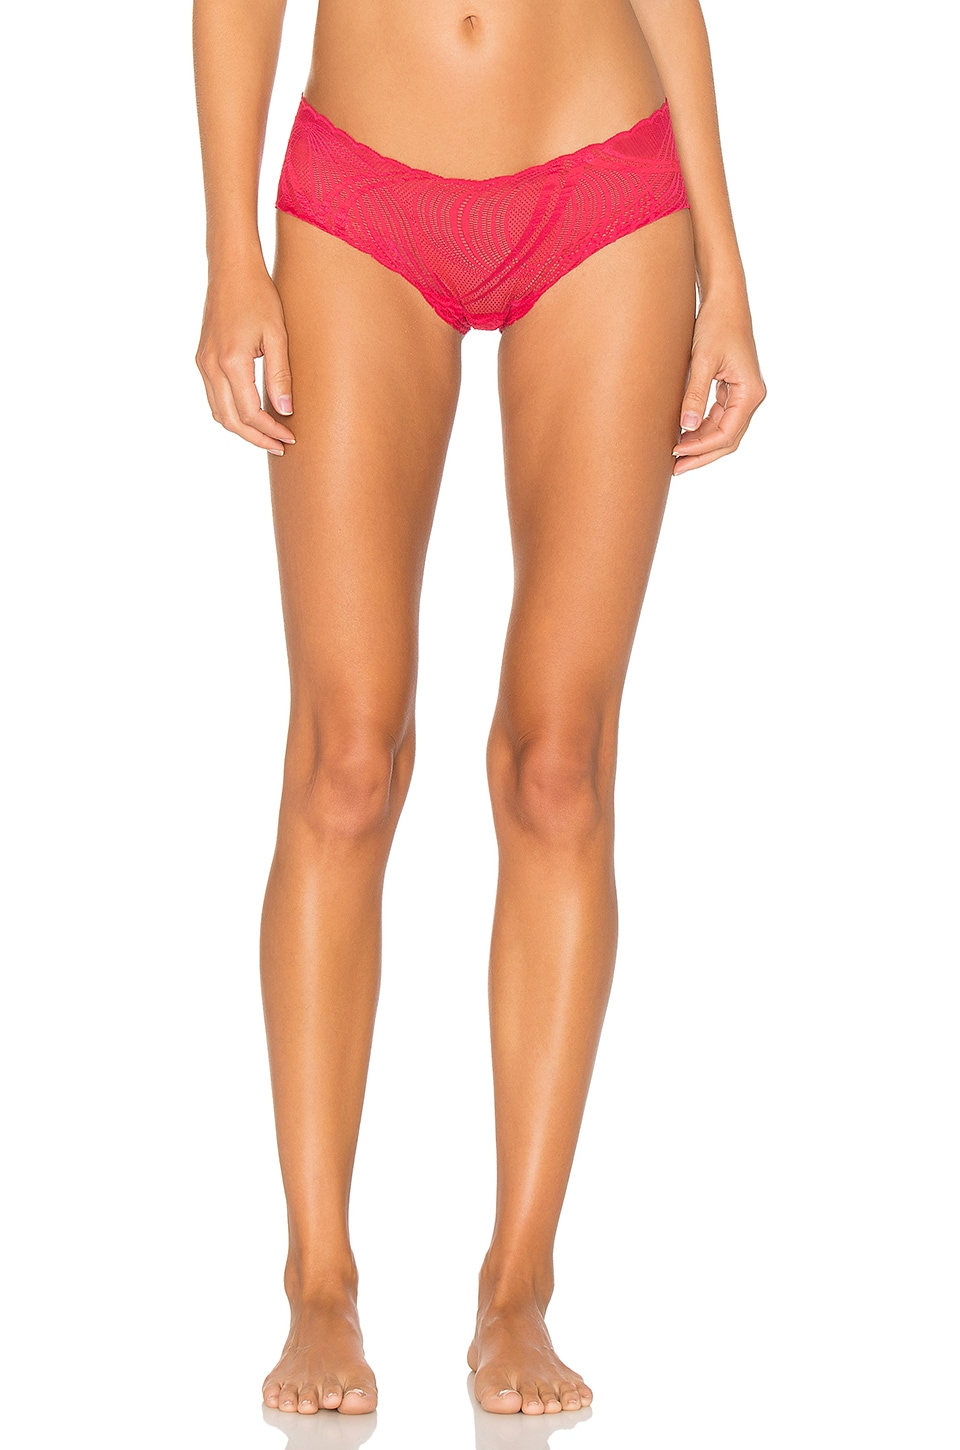 Minoa Low Rise Hotpant by Cosabella